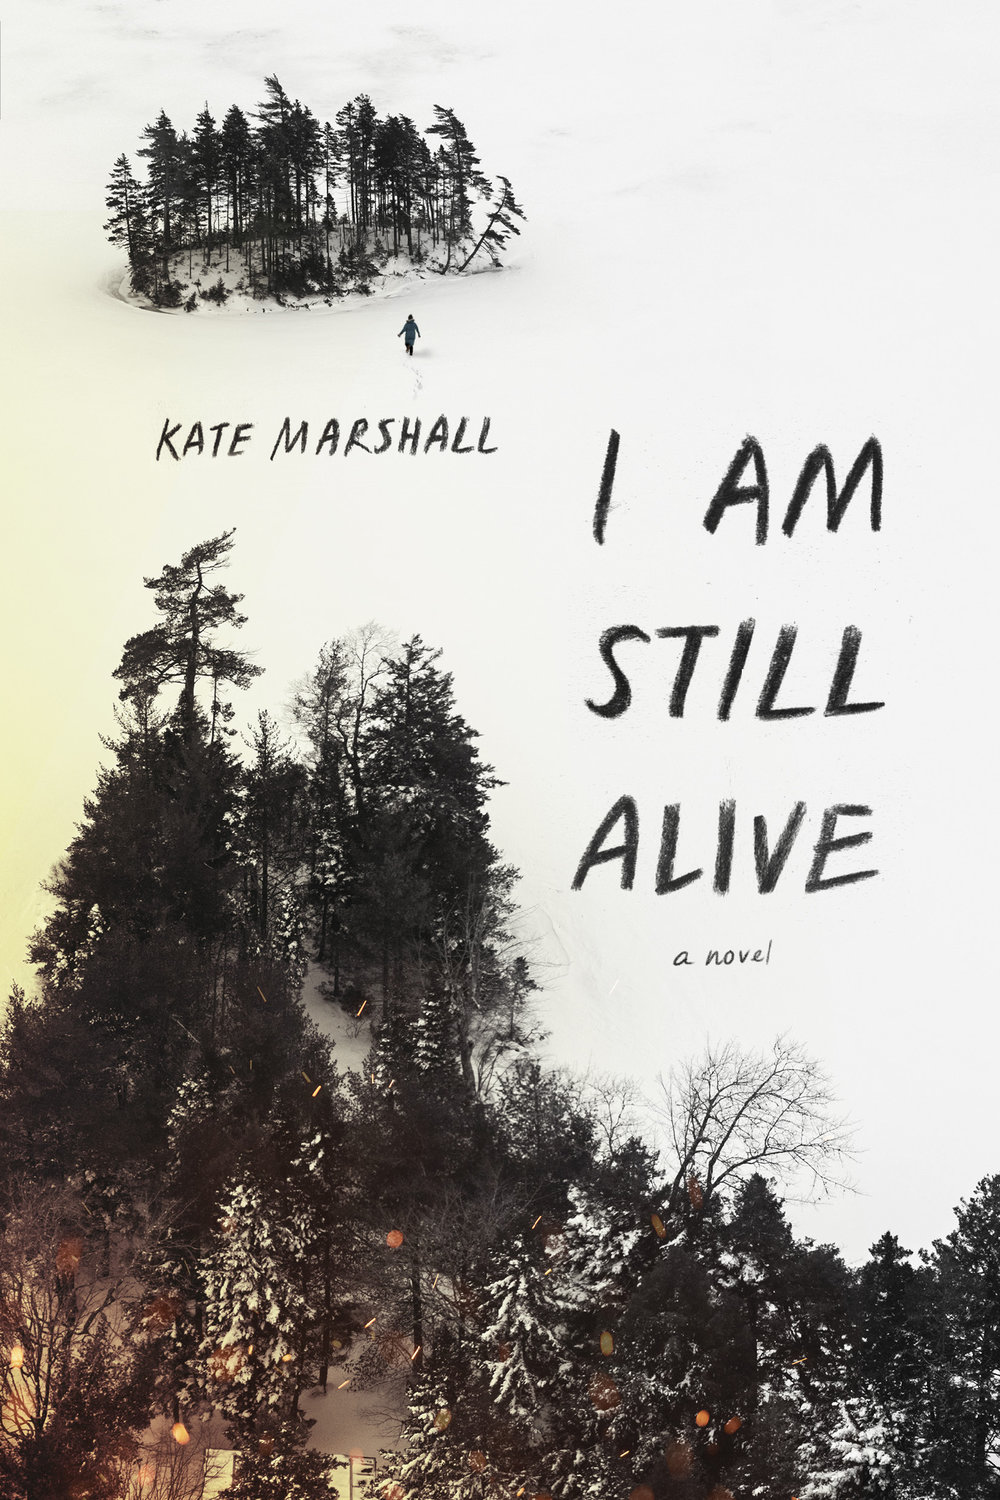 Happy book birthday to I AM STILL ALIVE by Kate Alice Marshall! - Cheryl Strayed's Wild meets The Revenant in this heart-pounding story of survival and revenge in the unforgiving wilderness.AfterJess is alone. Her cabin has burned to the ground. She knows if she doesn't act fast, the cold will kill her before she has time to worry about food. But she is still alive—for now. BeforeJess hadn't seen her survivalist, off-the-grid dad in over a decade. But after a car crash killed her mother and left her injured, she was forced to move to his cabin in the remote Canadian wilderness. Just as Jess was beginning to get to know him, a secret from his past paid them a visit, leaving her father dead and Jess stranded.  AfterWith only her father's dog for company, Jess must forage and hunt for food, build shelter, and keep herself warm. Some days it feels like the wild is out to destroy her, but she's stronger than she ever imagined. Jess will survive. She has to. She knows who killed her father…and she wants revenge.